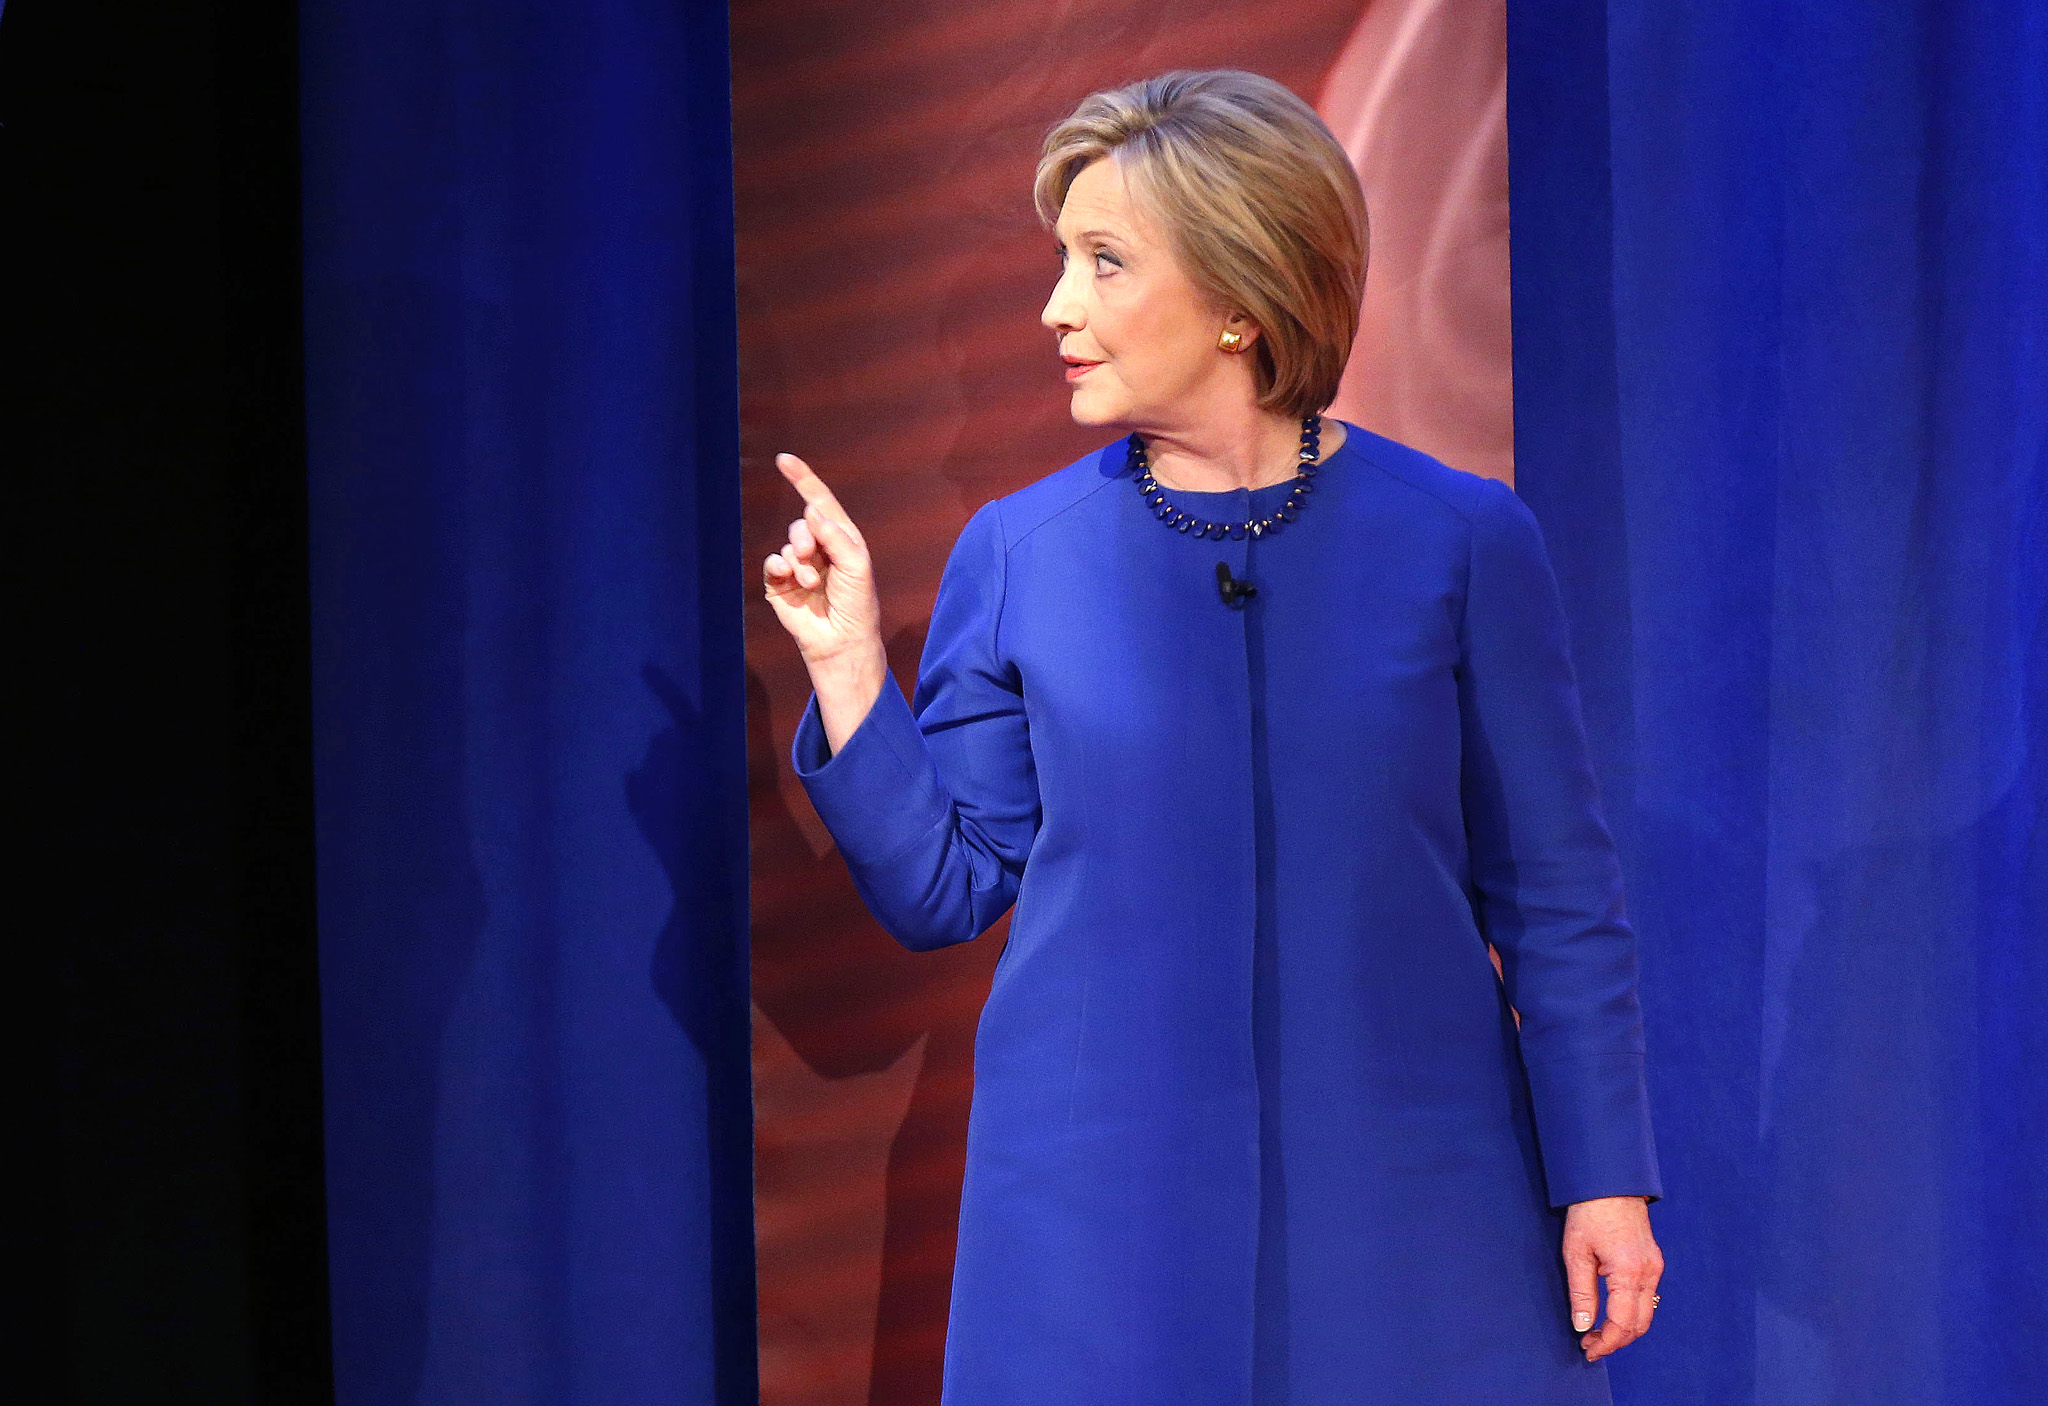 Hillary Clinton...Democratic presidential candidate Hillary Clinton gestures during a commercial break at a CNN town hall style televised event at the University of South Carolina School of Law, in Columbia, S.C., Tuesday, Feb. 23, 2016. (AP Photo/Gerald Herbert)